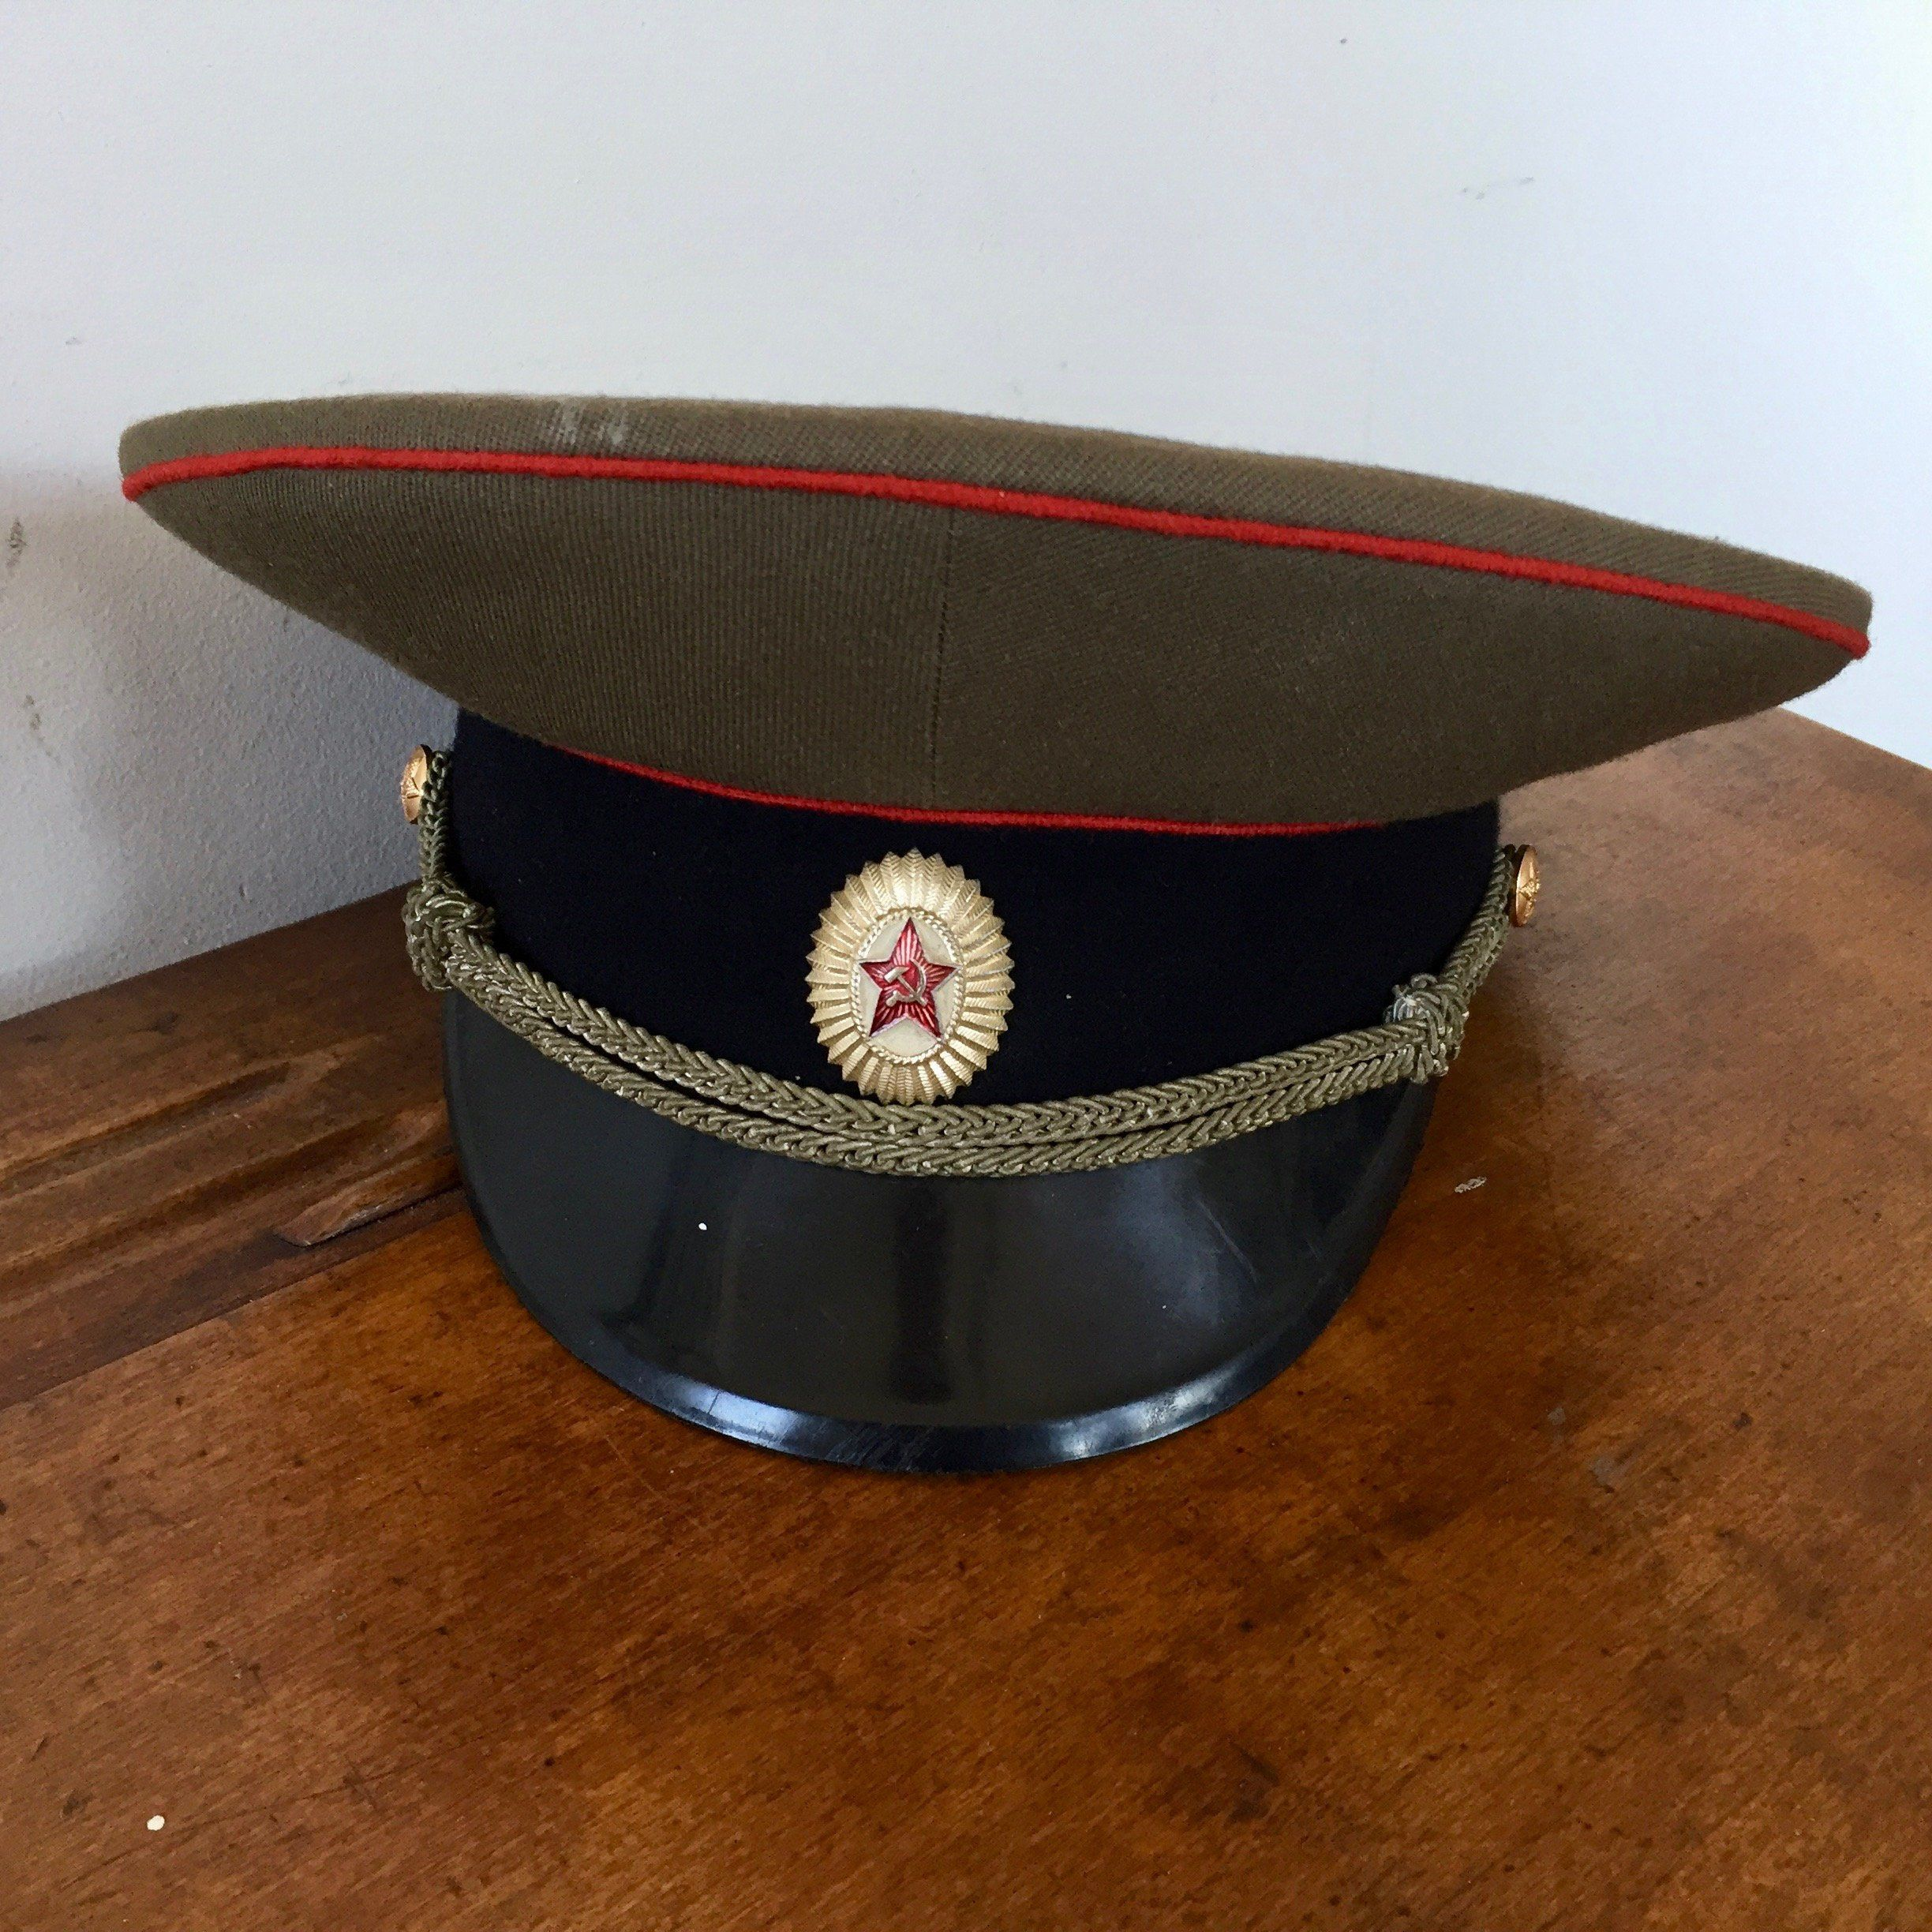 ad266303a61c3 Vintage RUSSIAN MILITARY Hat w/ Hammer and Sickle Hat Badge, USSR ...